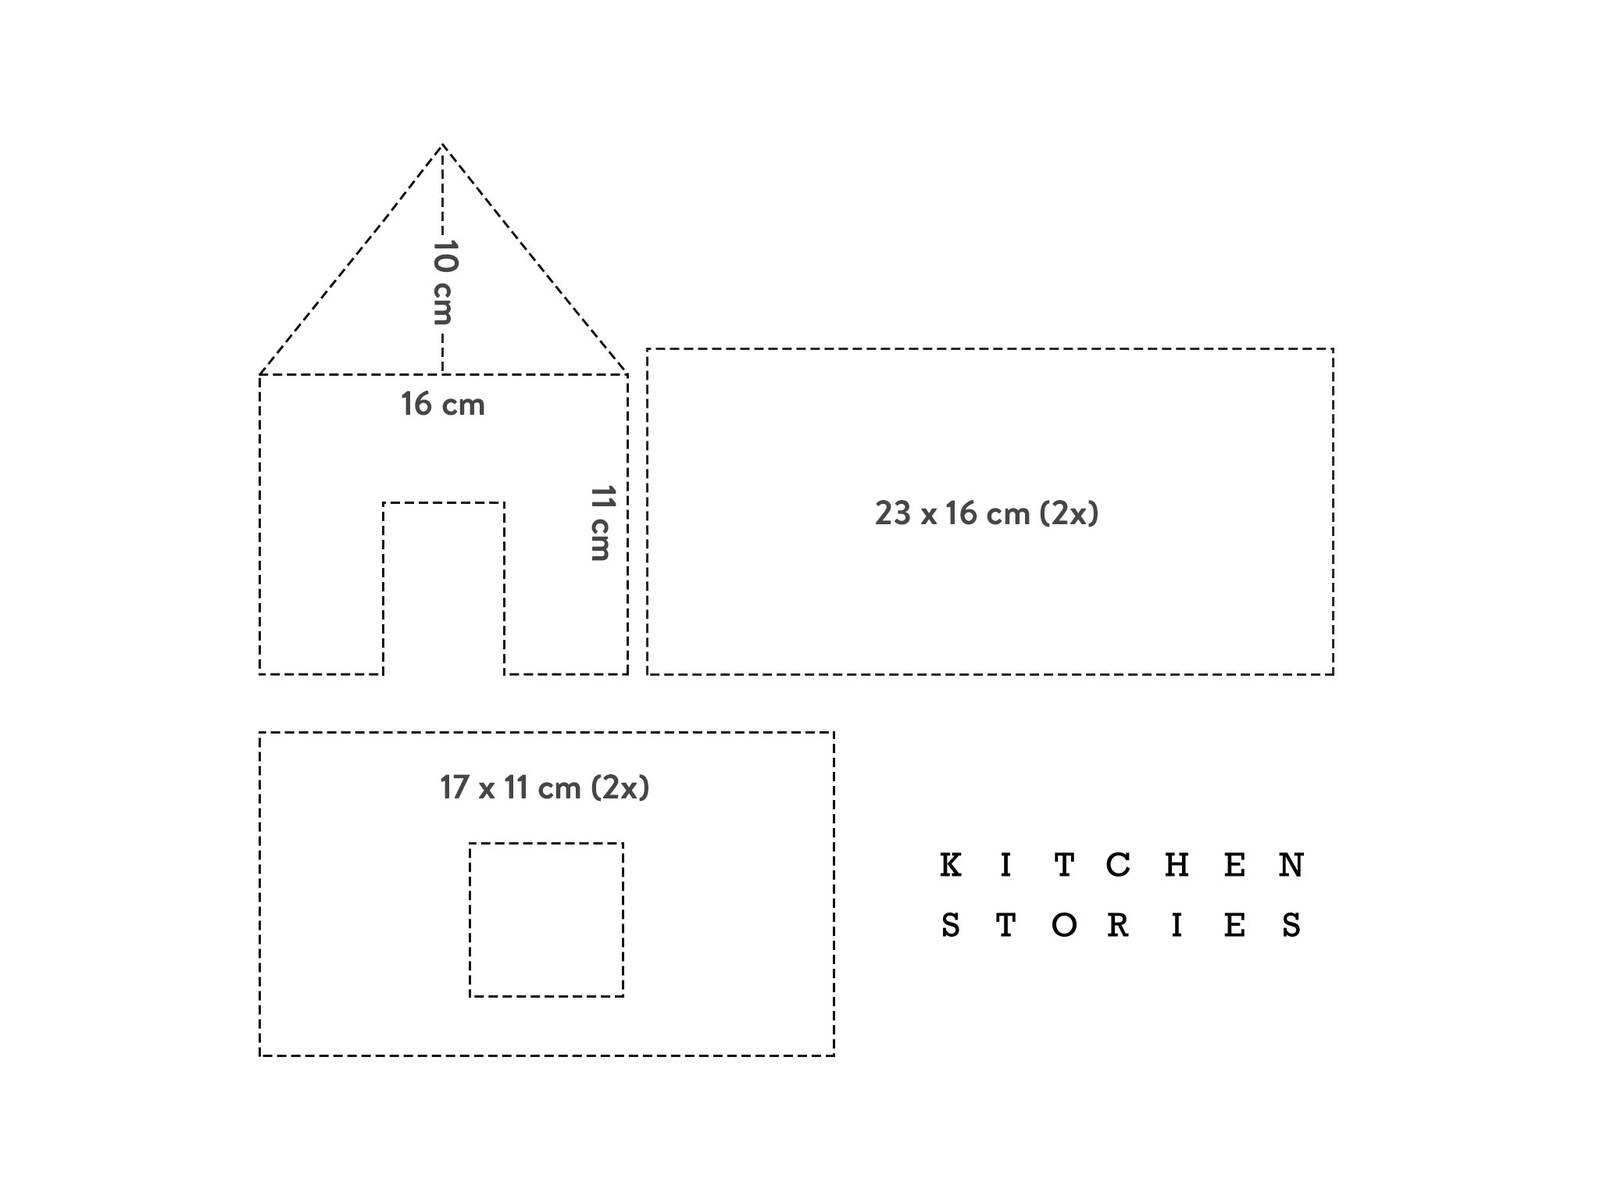 For your gingerbread house cut out each template from the dough twice. You can also take the measurements and make your own stencils. Enjoy!